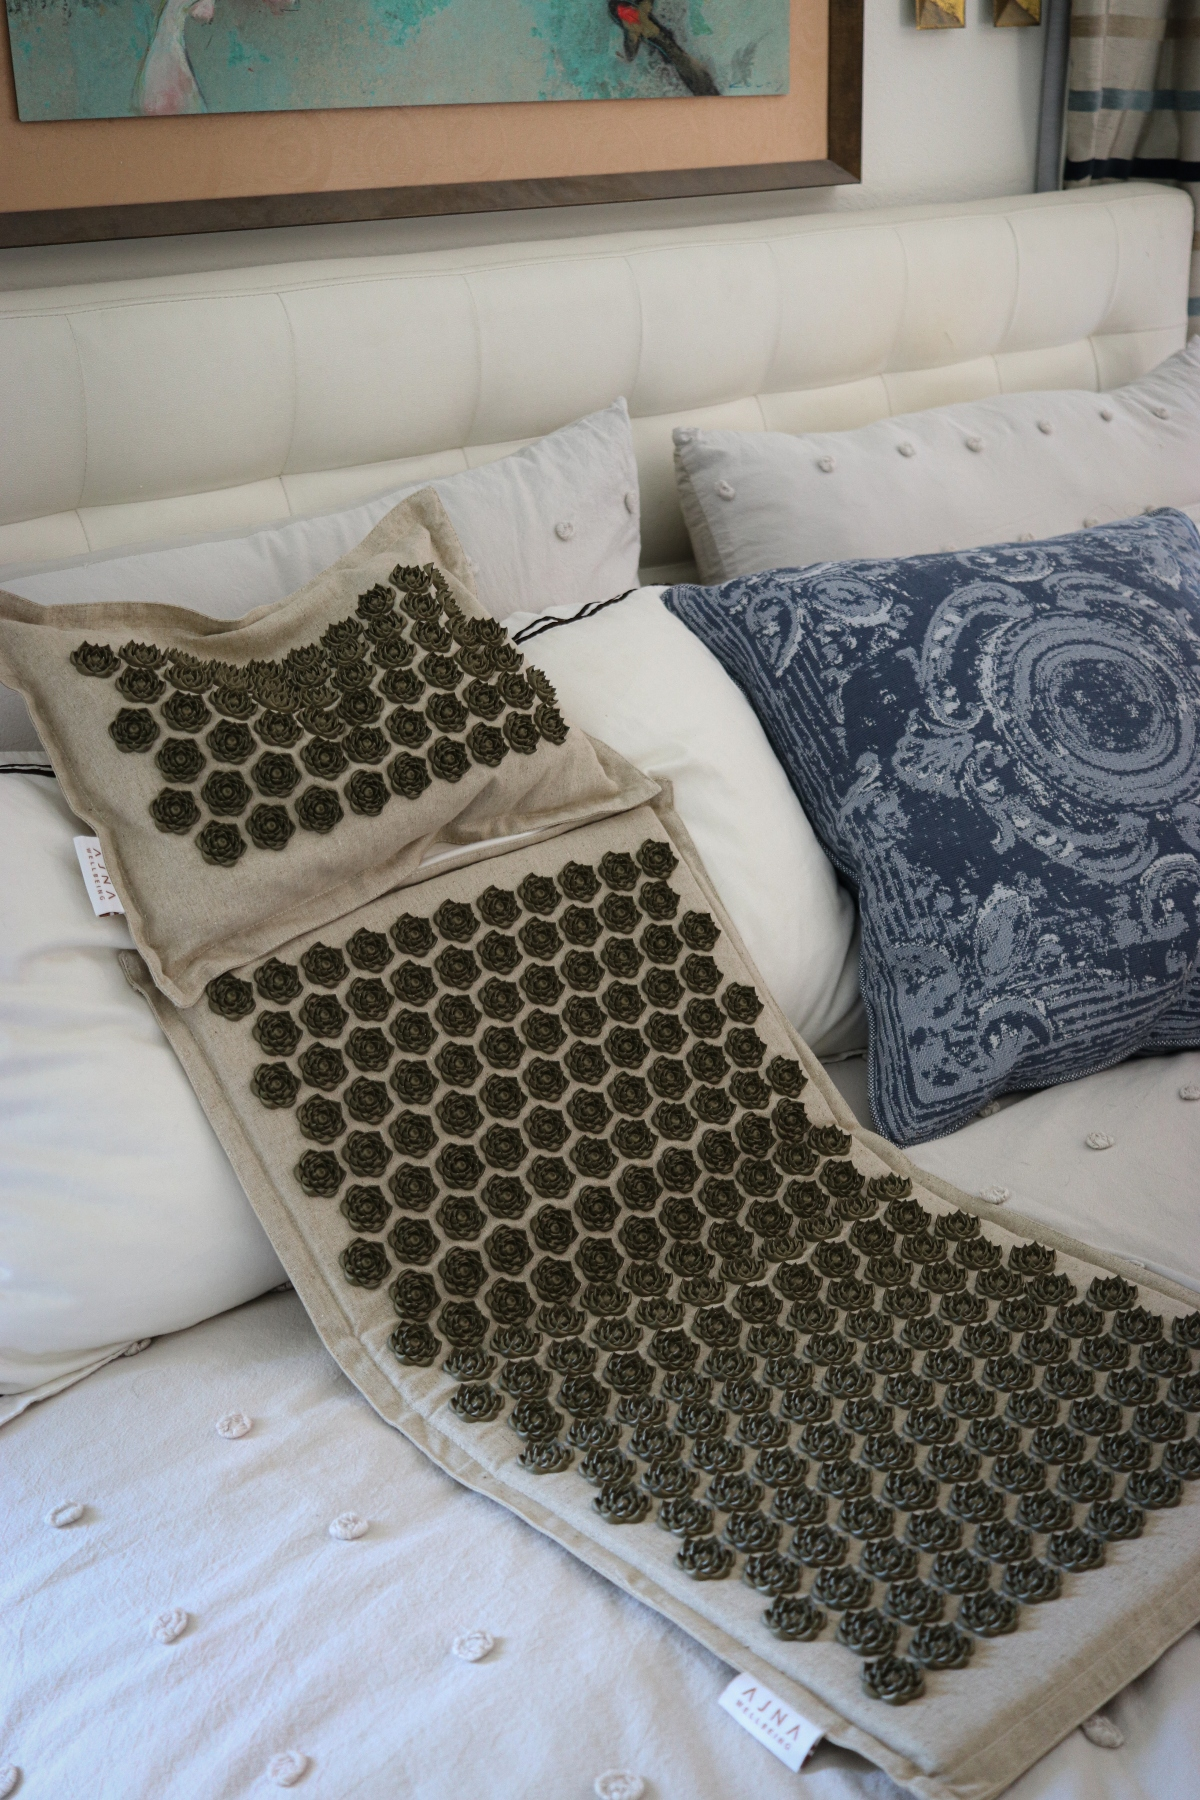 A natural approach to healing: Acupressure mats and pillows